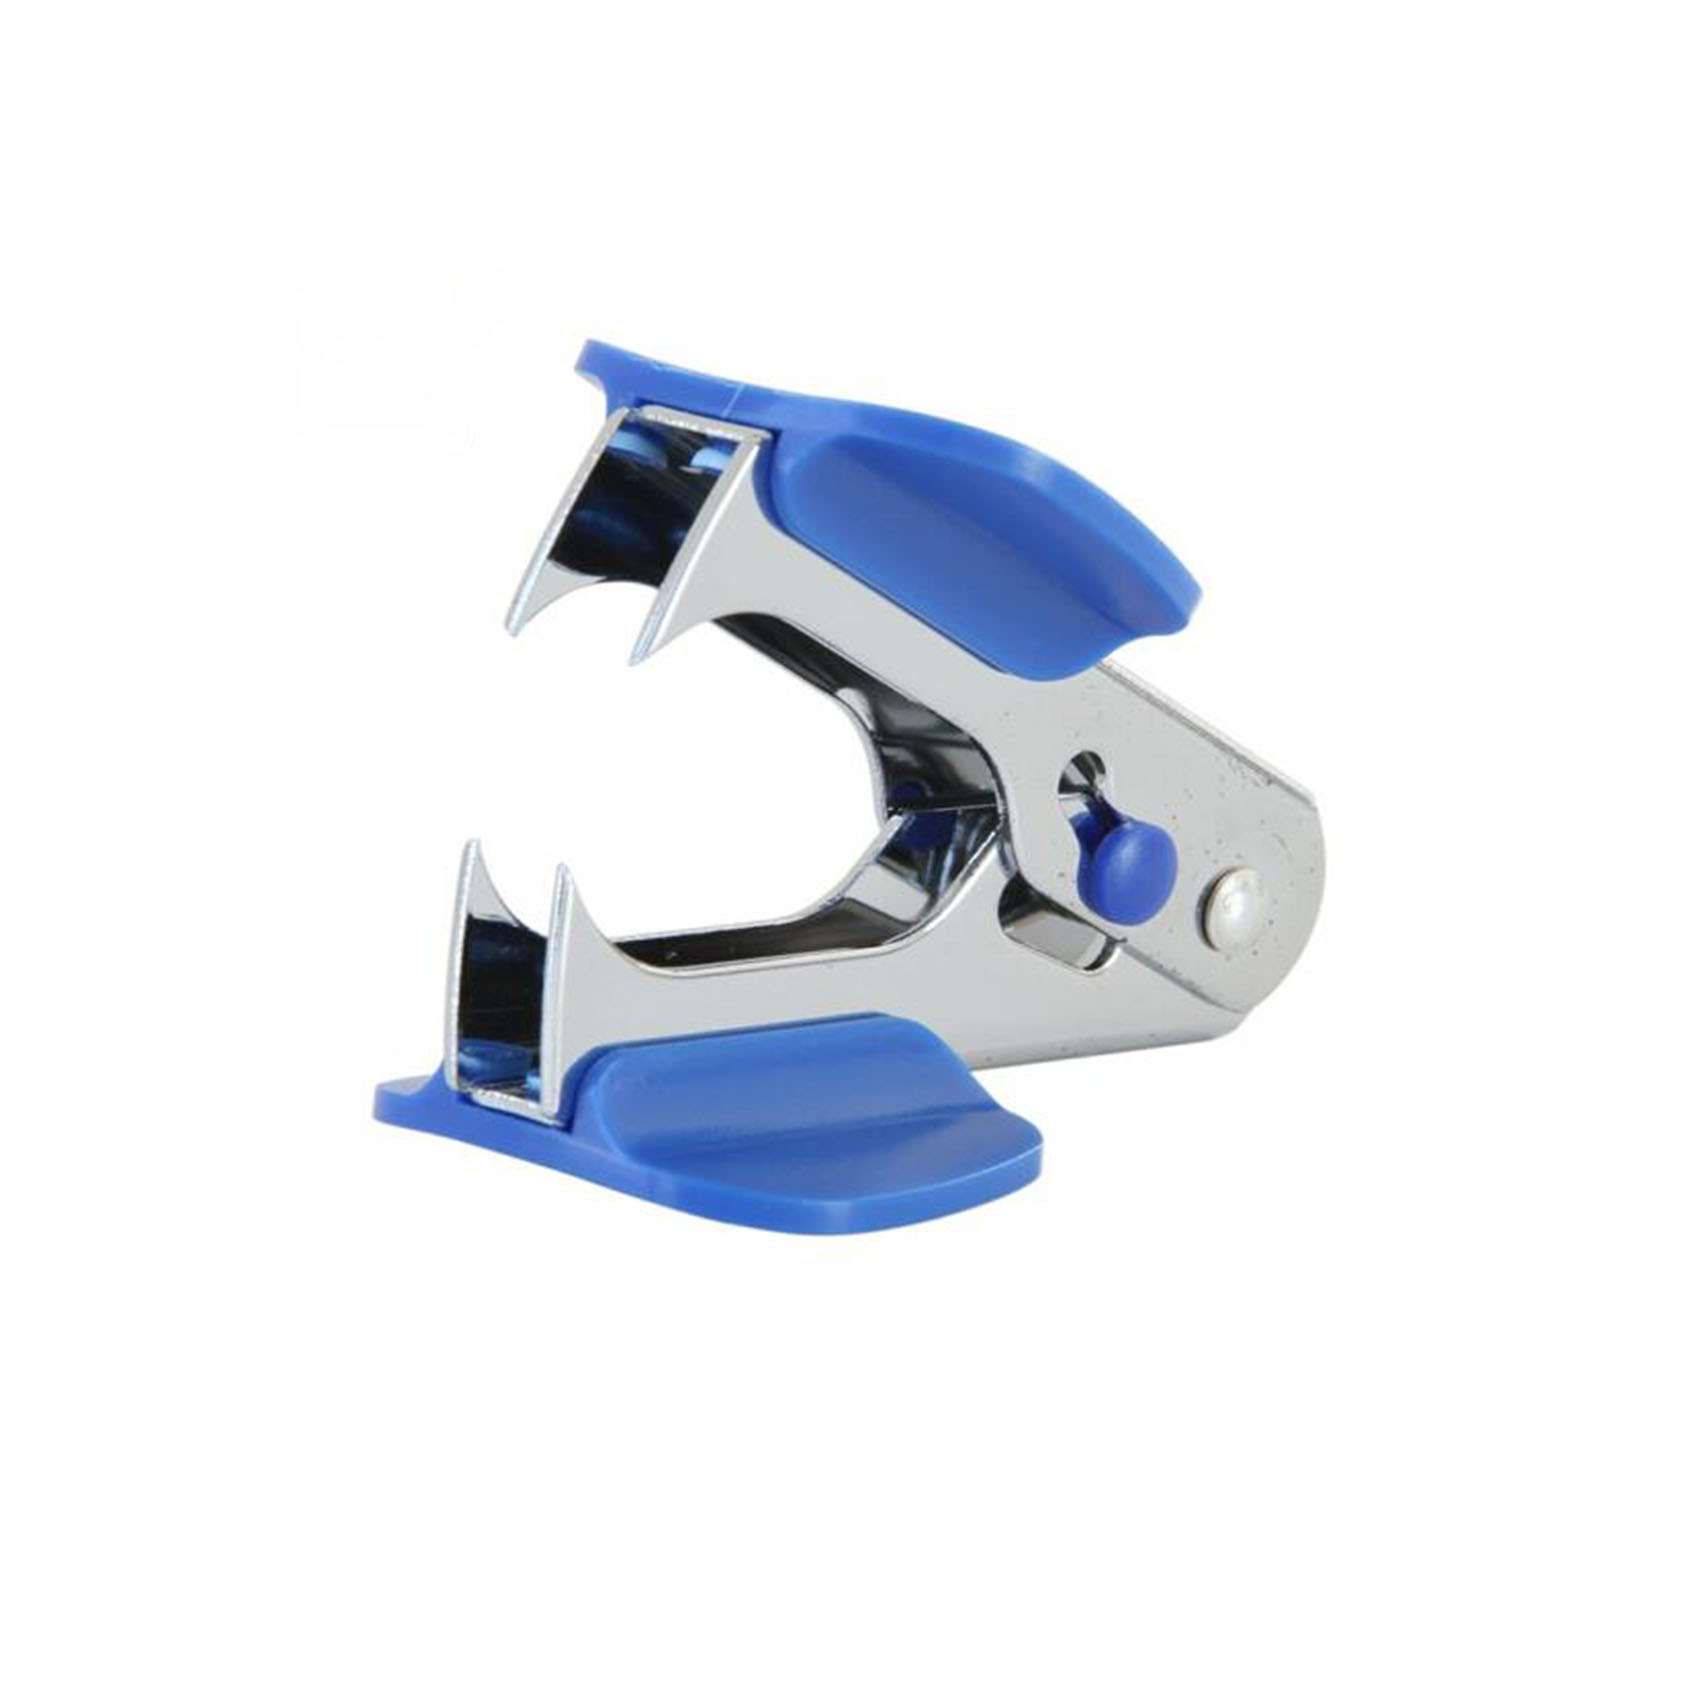 High Performance 24/6 26/6 Office Stationery Manual Desktop Metal Staple Remover